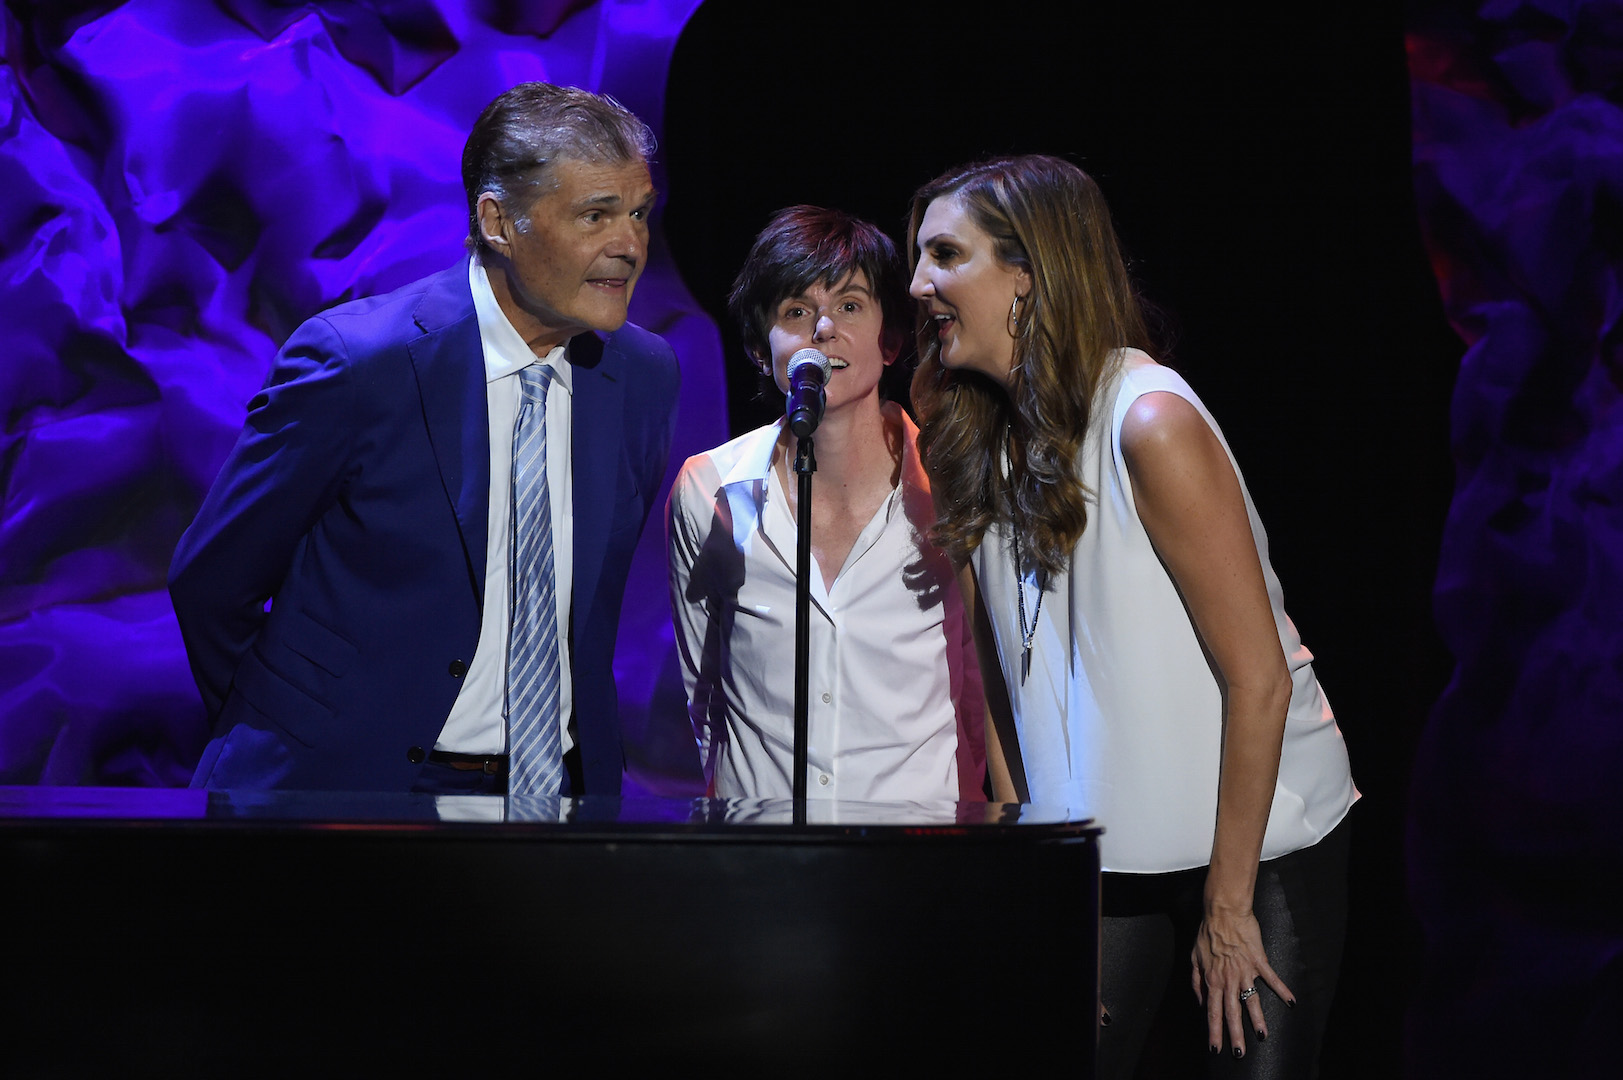 LOS ANGELES, CA - OCTOBER 10:  (L-R) Fred Willard, Tig Notaro and Heather McDonald sing backup onstage during the 9th Annual Comedy Celebration, presented by the International Myeloma Foundation, at The Wilshire Ebell Theatre on October 10, 2015 in Los Angeles, California.  (Photo by Kevin Winter/Getty Images for International Myeloma Foundation)